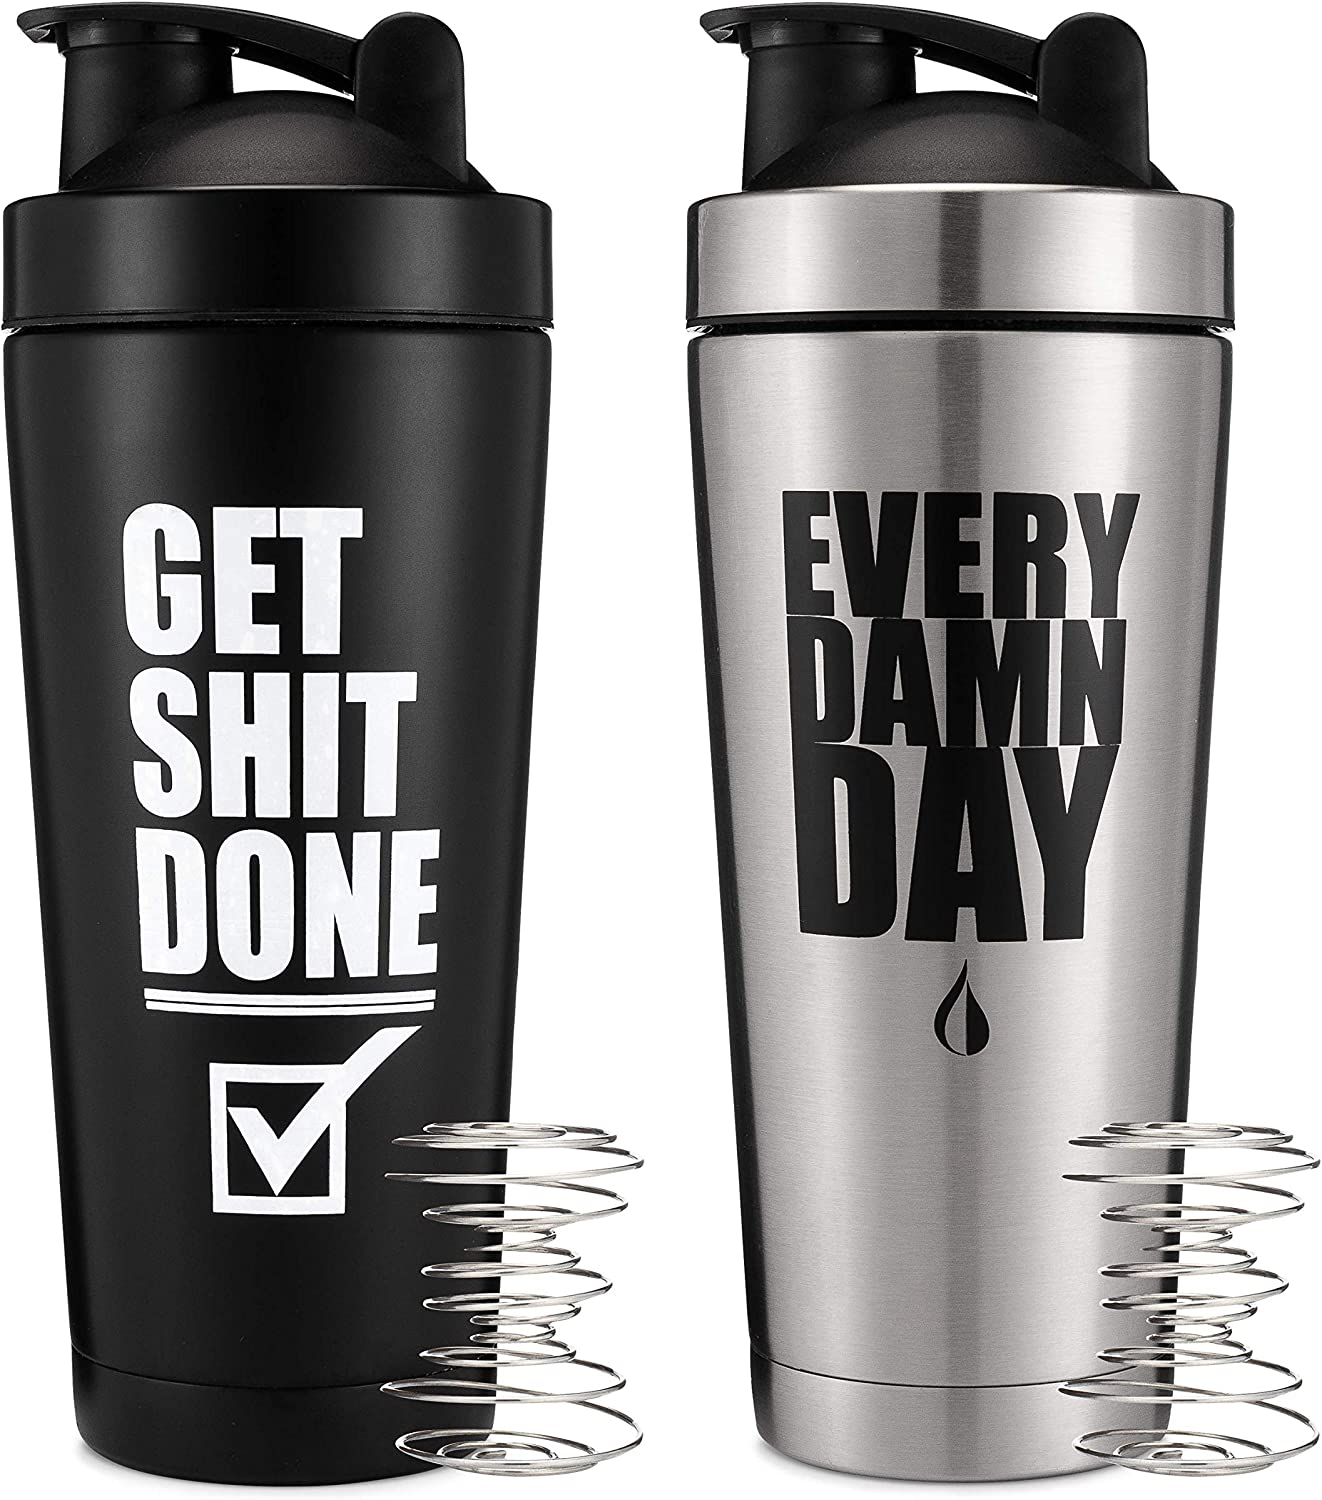 2 Pack, 24oz Insulated Stainless Steel Shaker Bottle, Double Walled Vacuum Protein Shaker Cup, Get It Done & Every Day